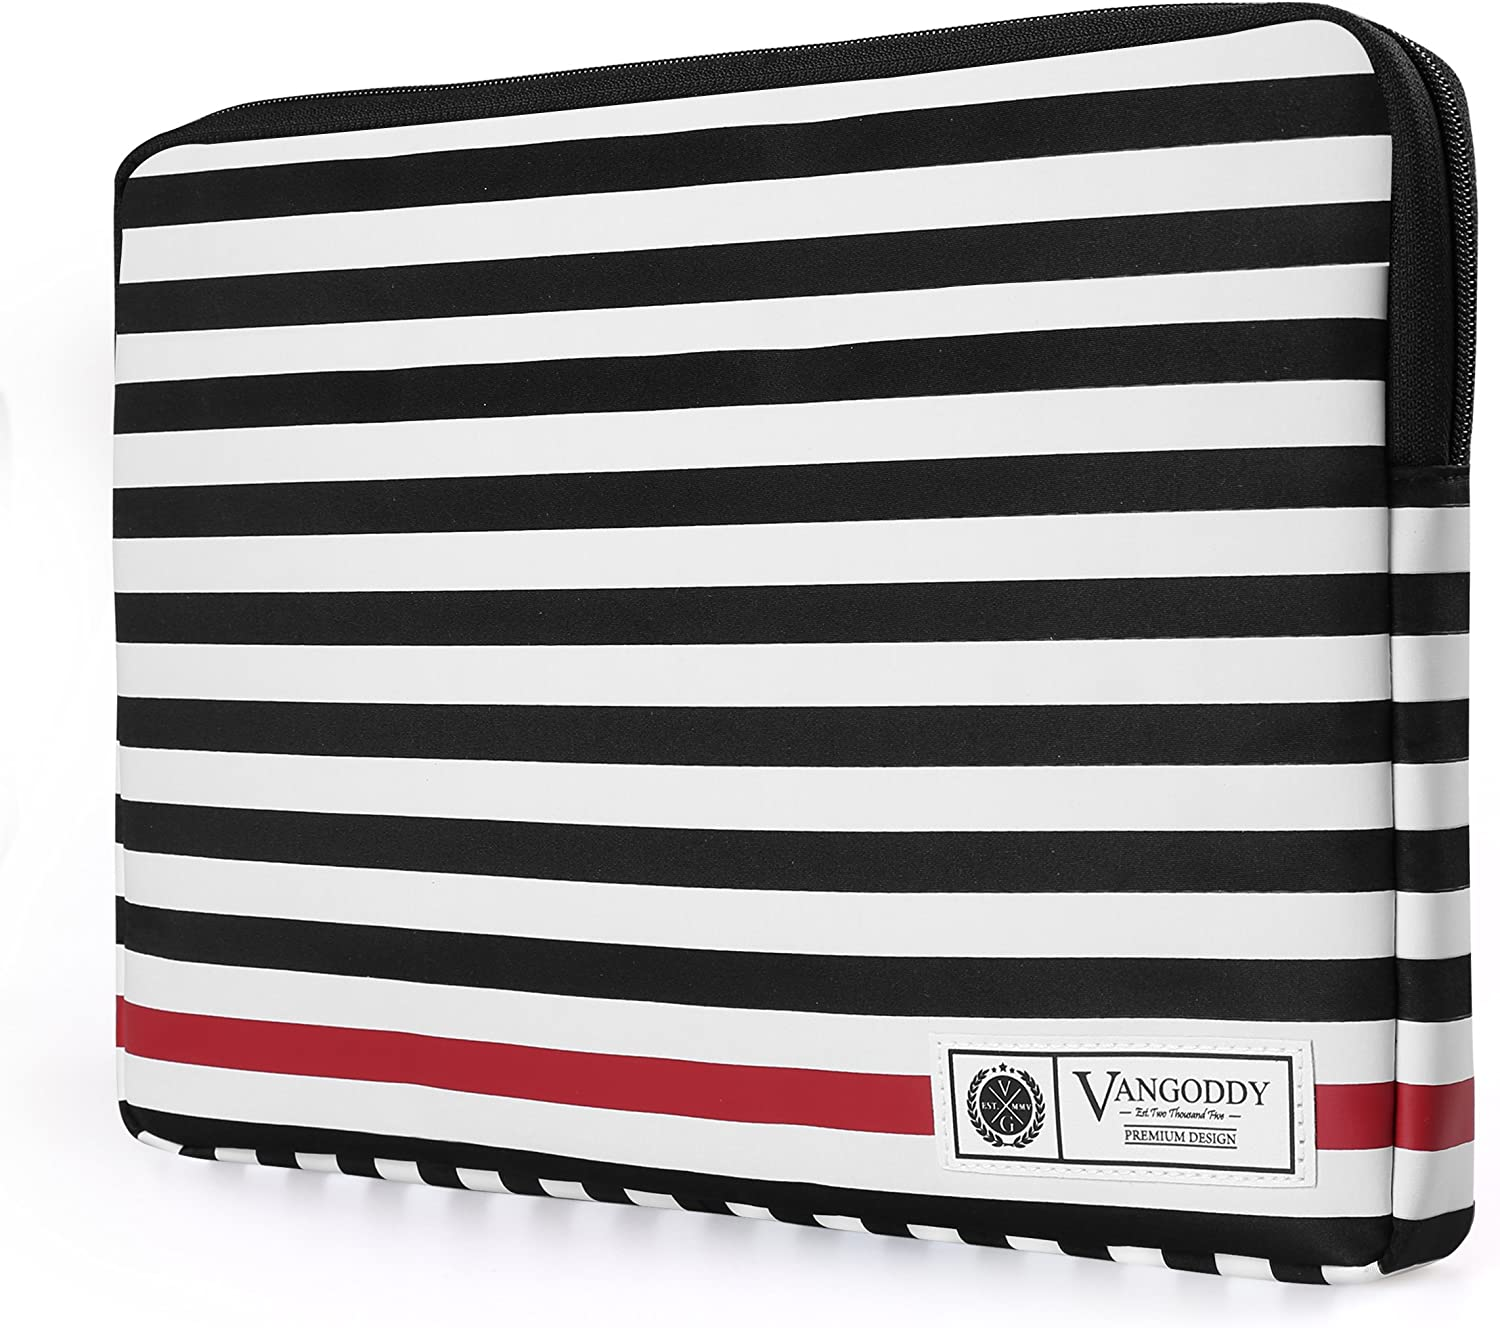 Vangoddy Luxe R Series Classic Black White Stripe Padded Sleeve for Dell Chromebook 13, Latitude 13, Vostro 14, Inspiron 13 14 15 Series 13.3 inch 14 inch Tablet Laptop